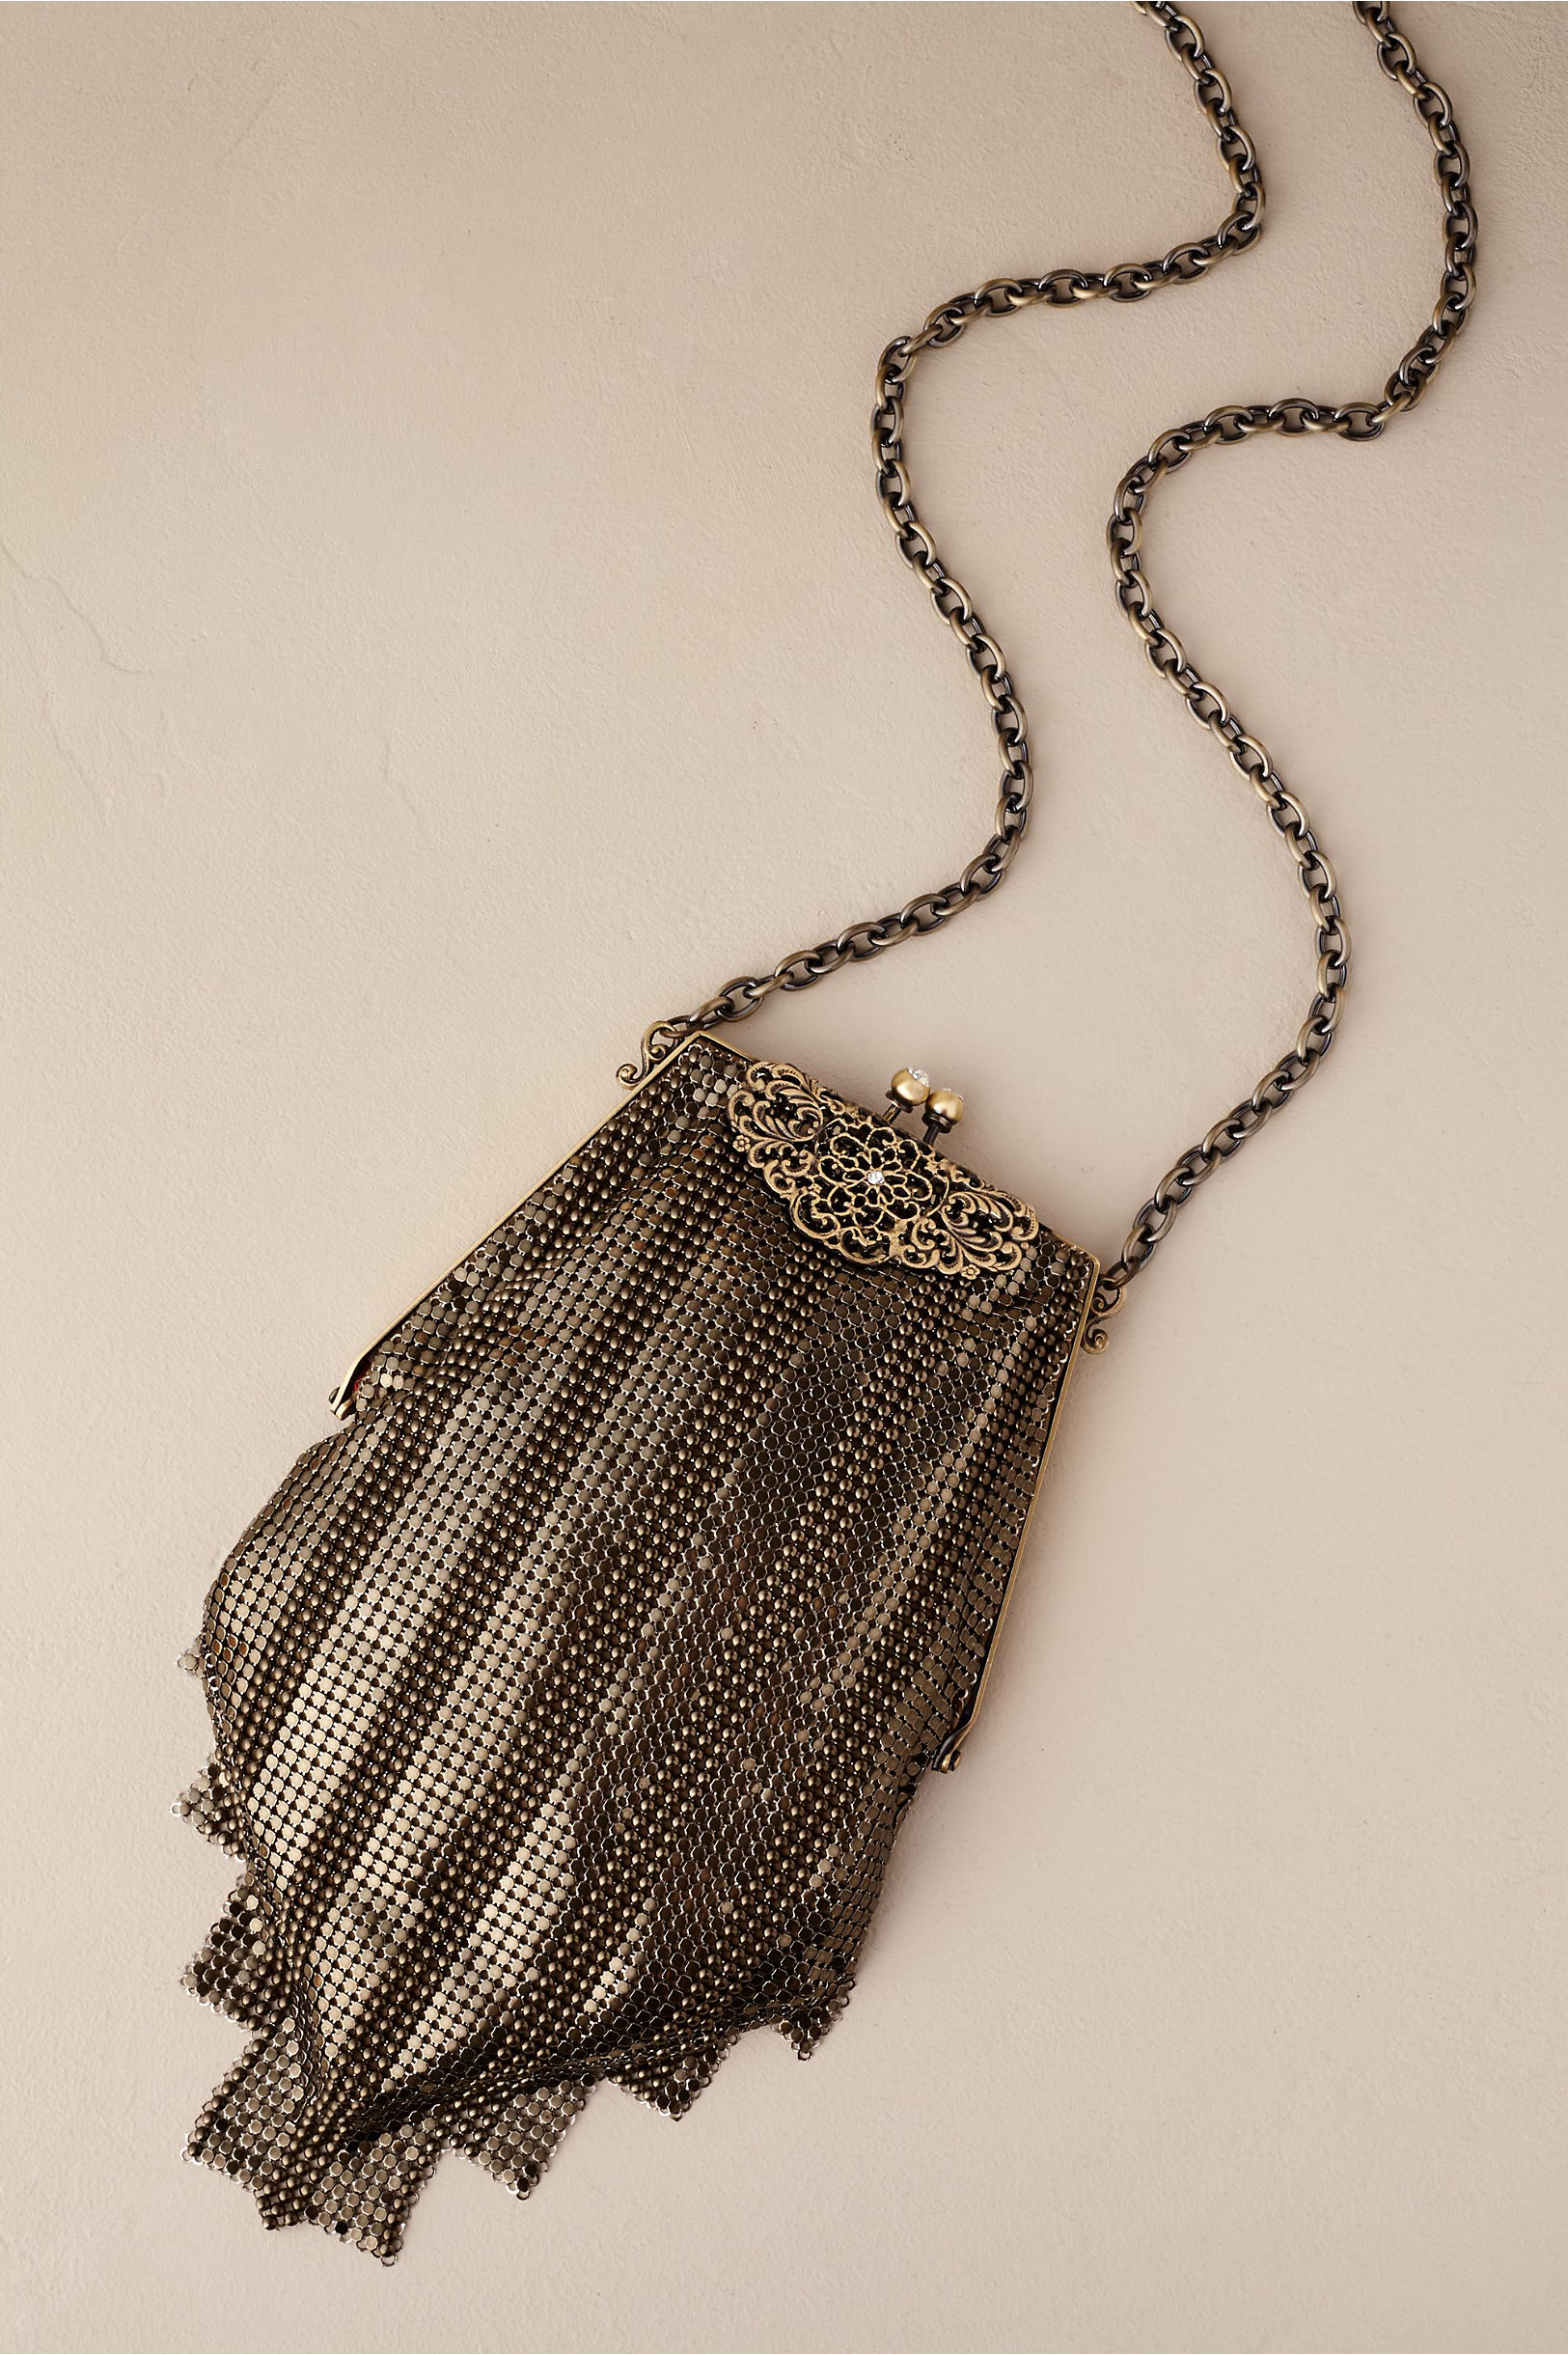 Vintage & Retro Handbags, Purses, Wallets, Bags Drella Clutch $298.00 AT vintagedancer.com